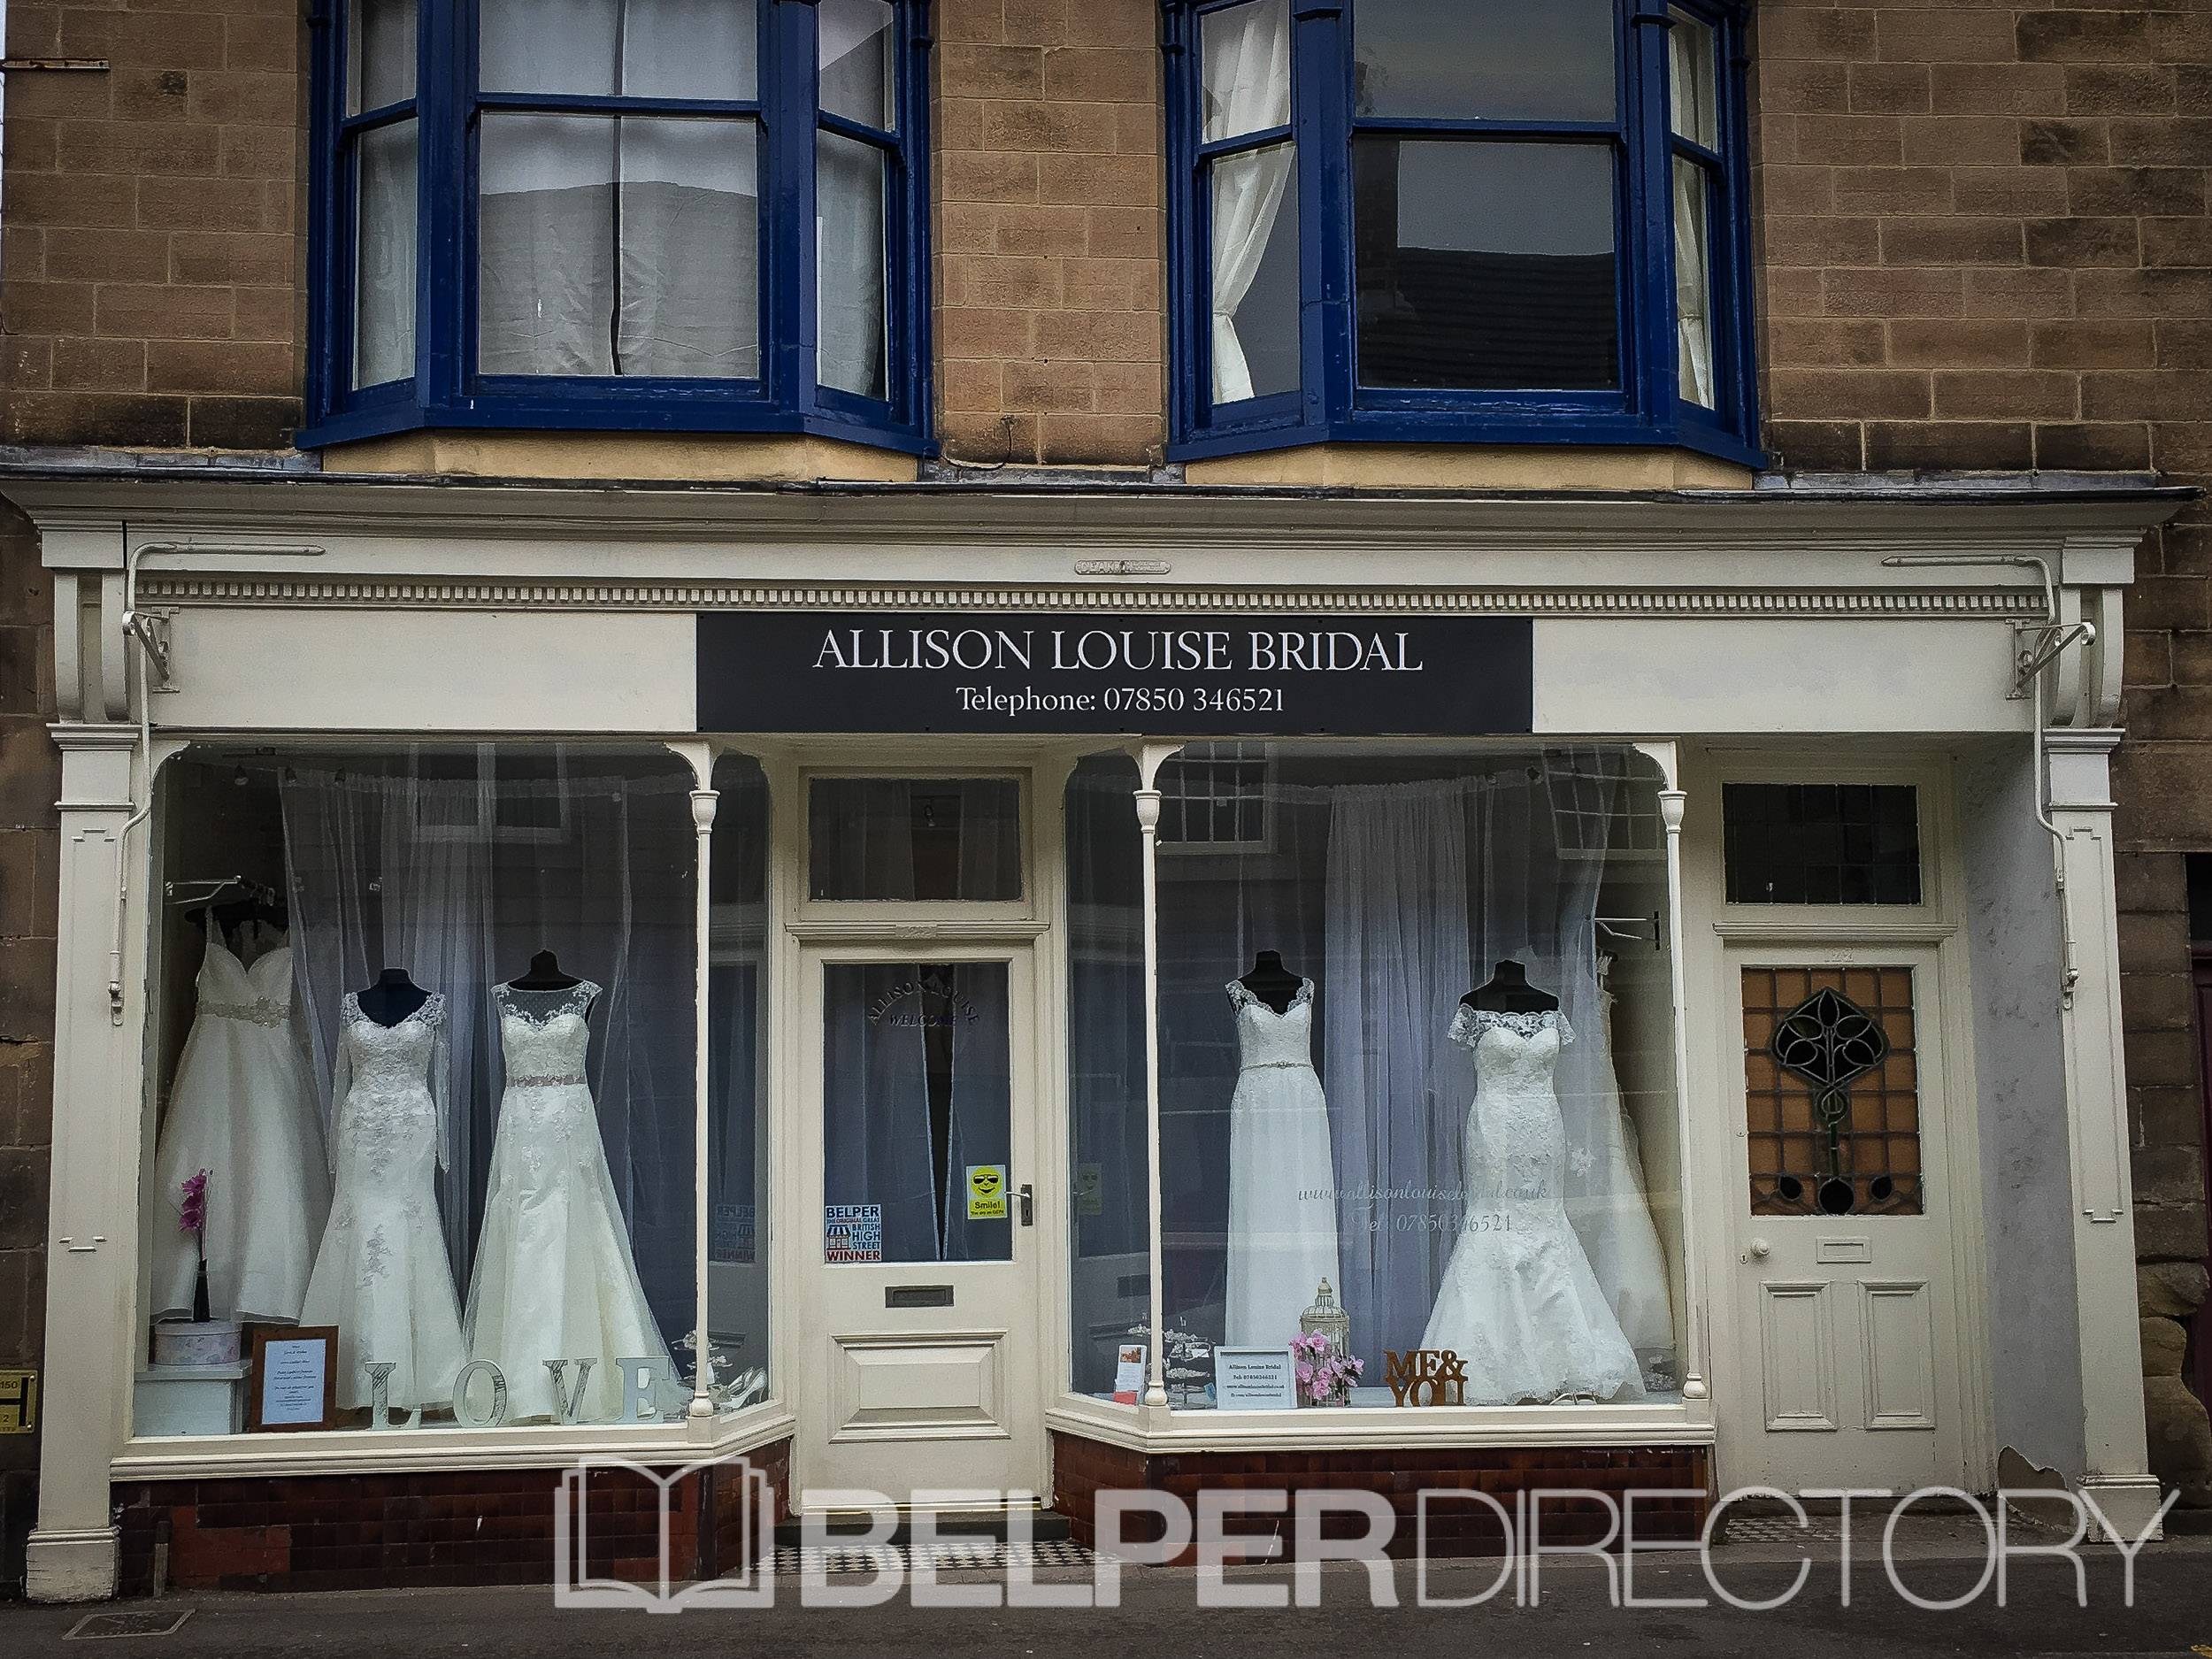 Allison Louise Bridal Shop on Inter Search